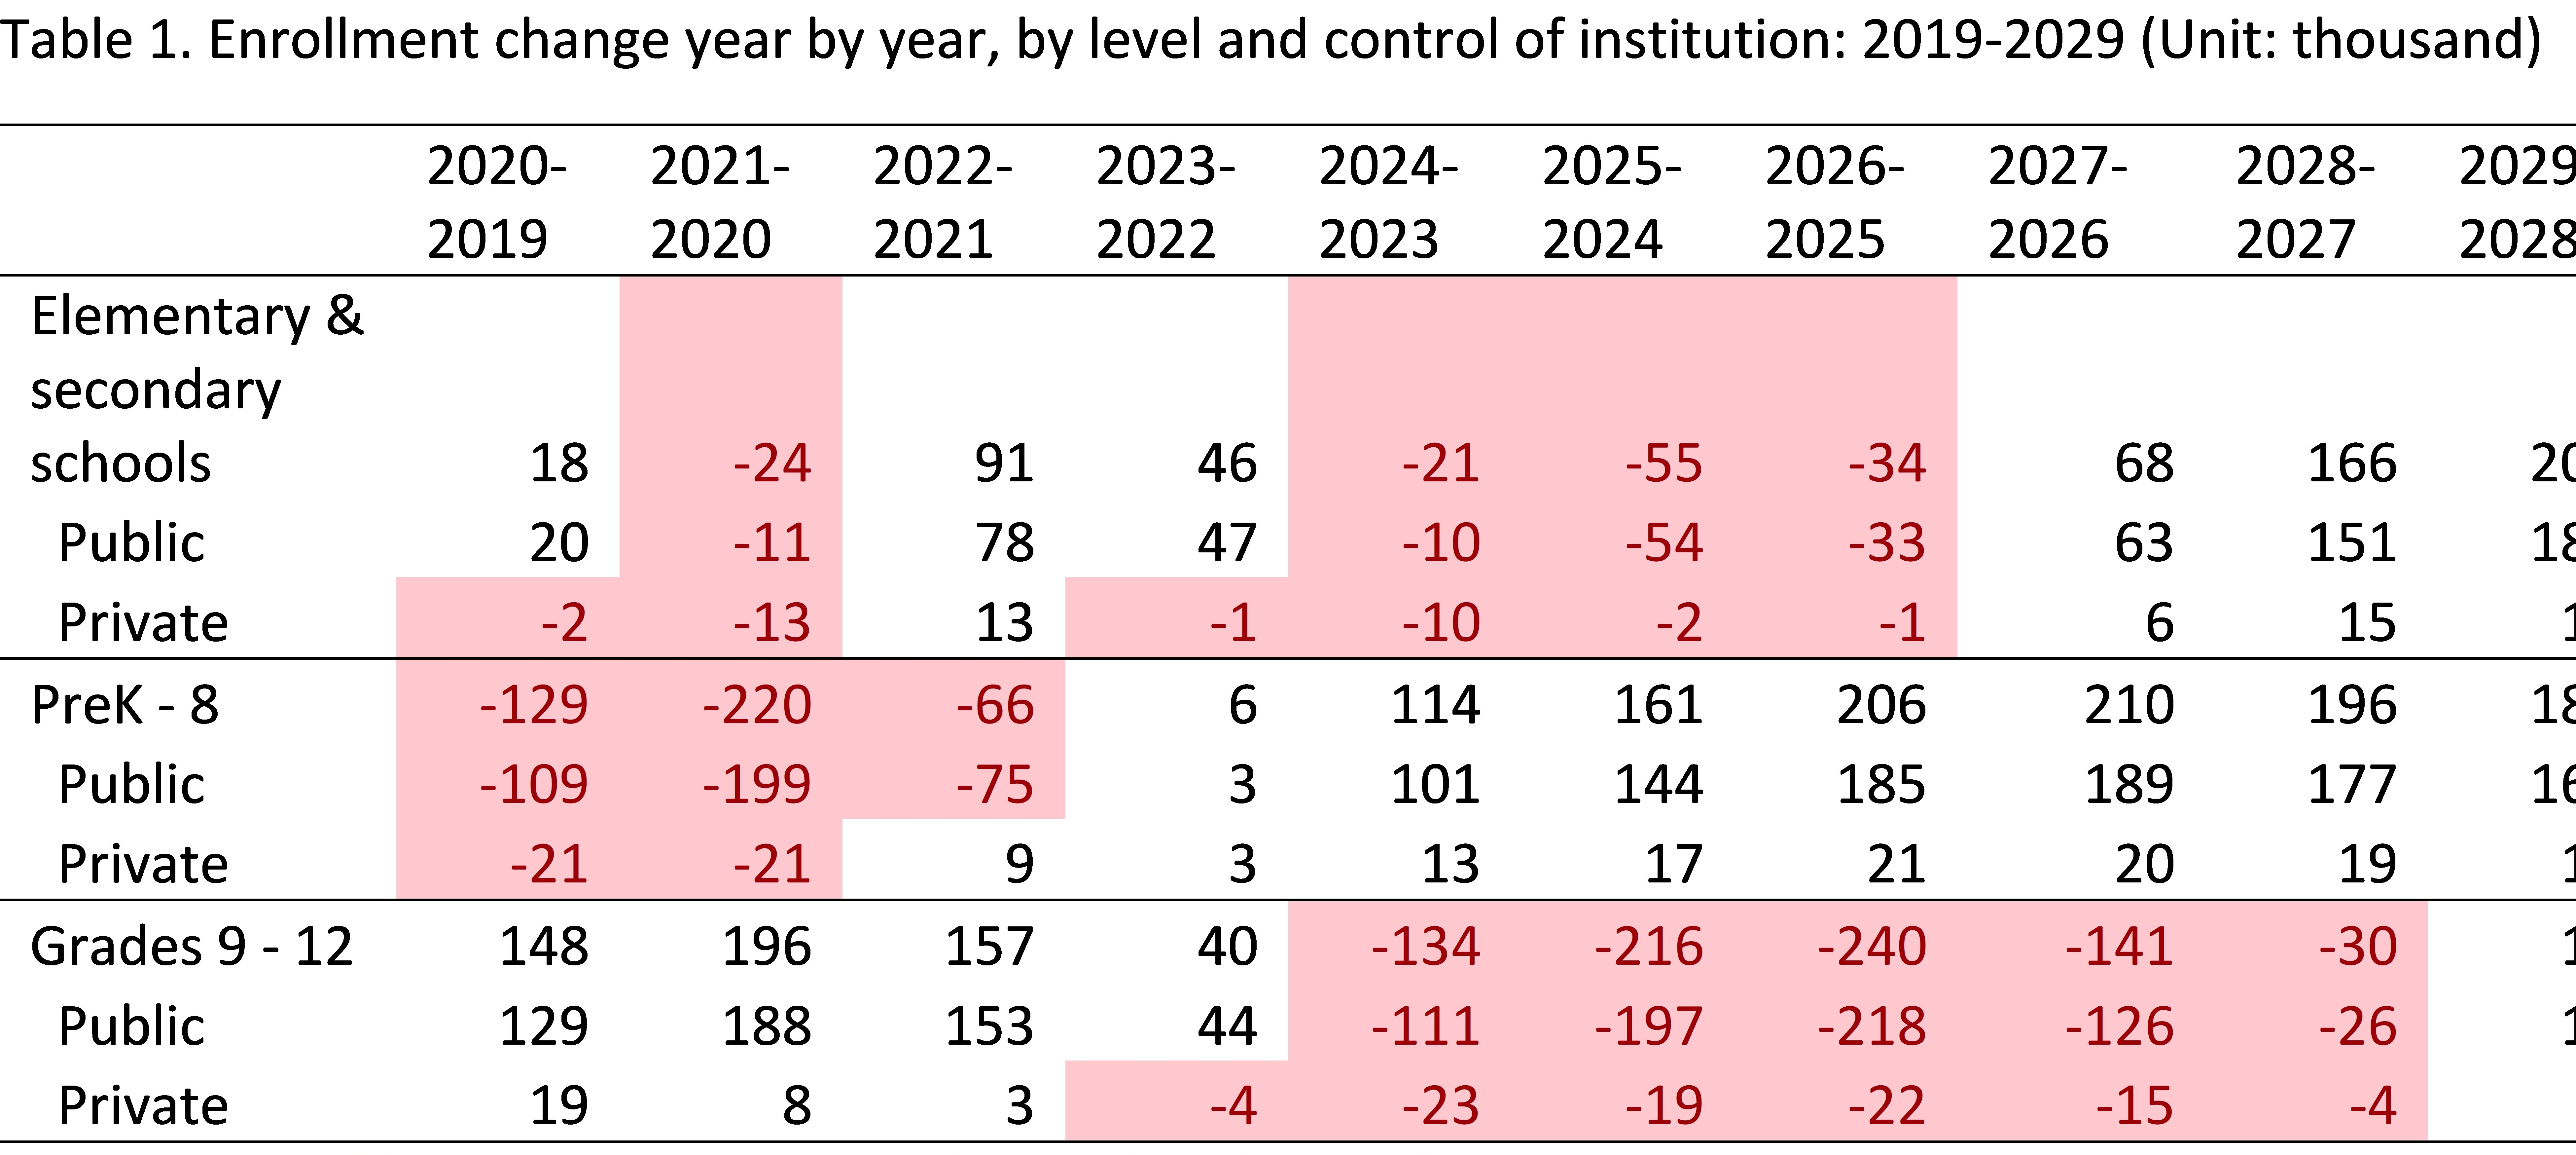 a table showing enrollment change year by year, by level and control of institution